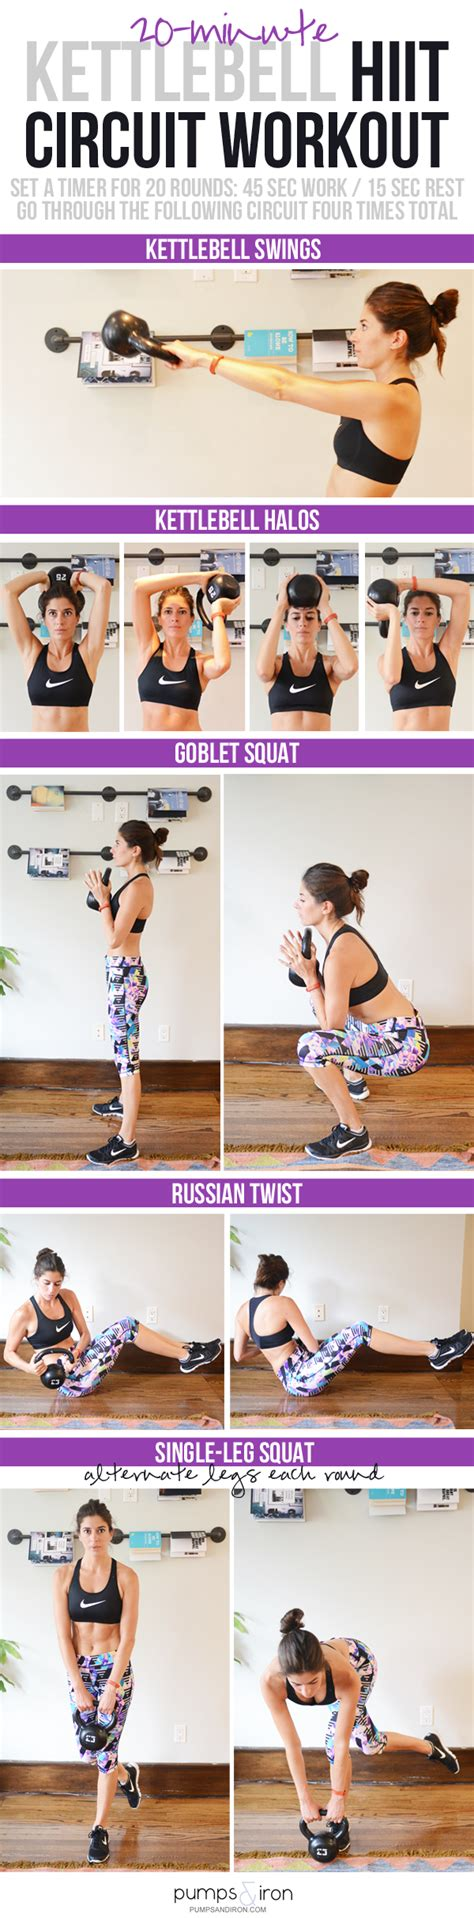 hiit workout kettlebell workouts minute dorm room piece equipment exercise kettle bell body need circuit exercises weight fitness cardio killer